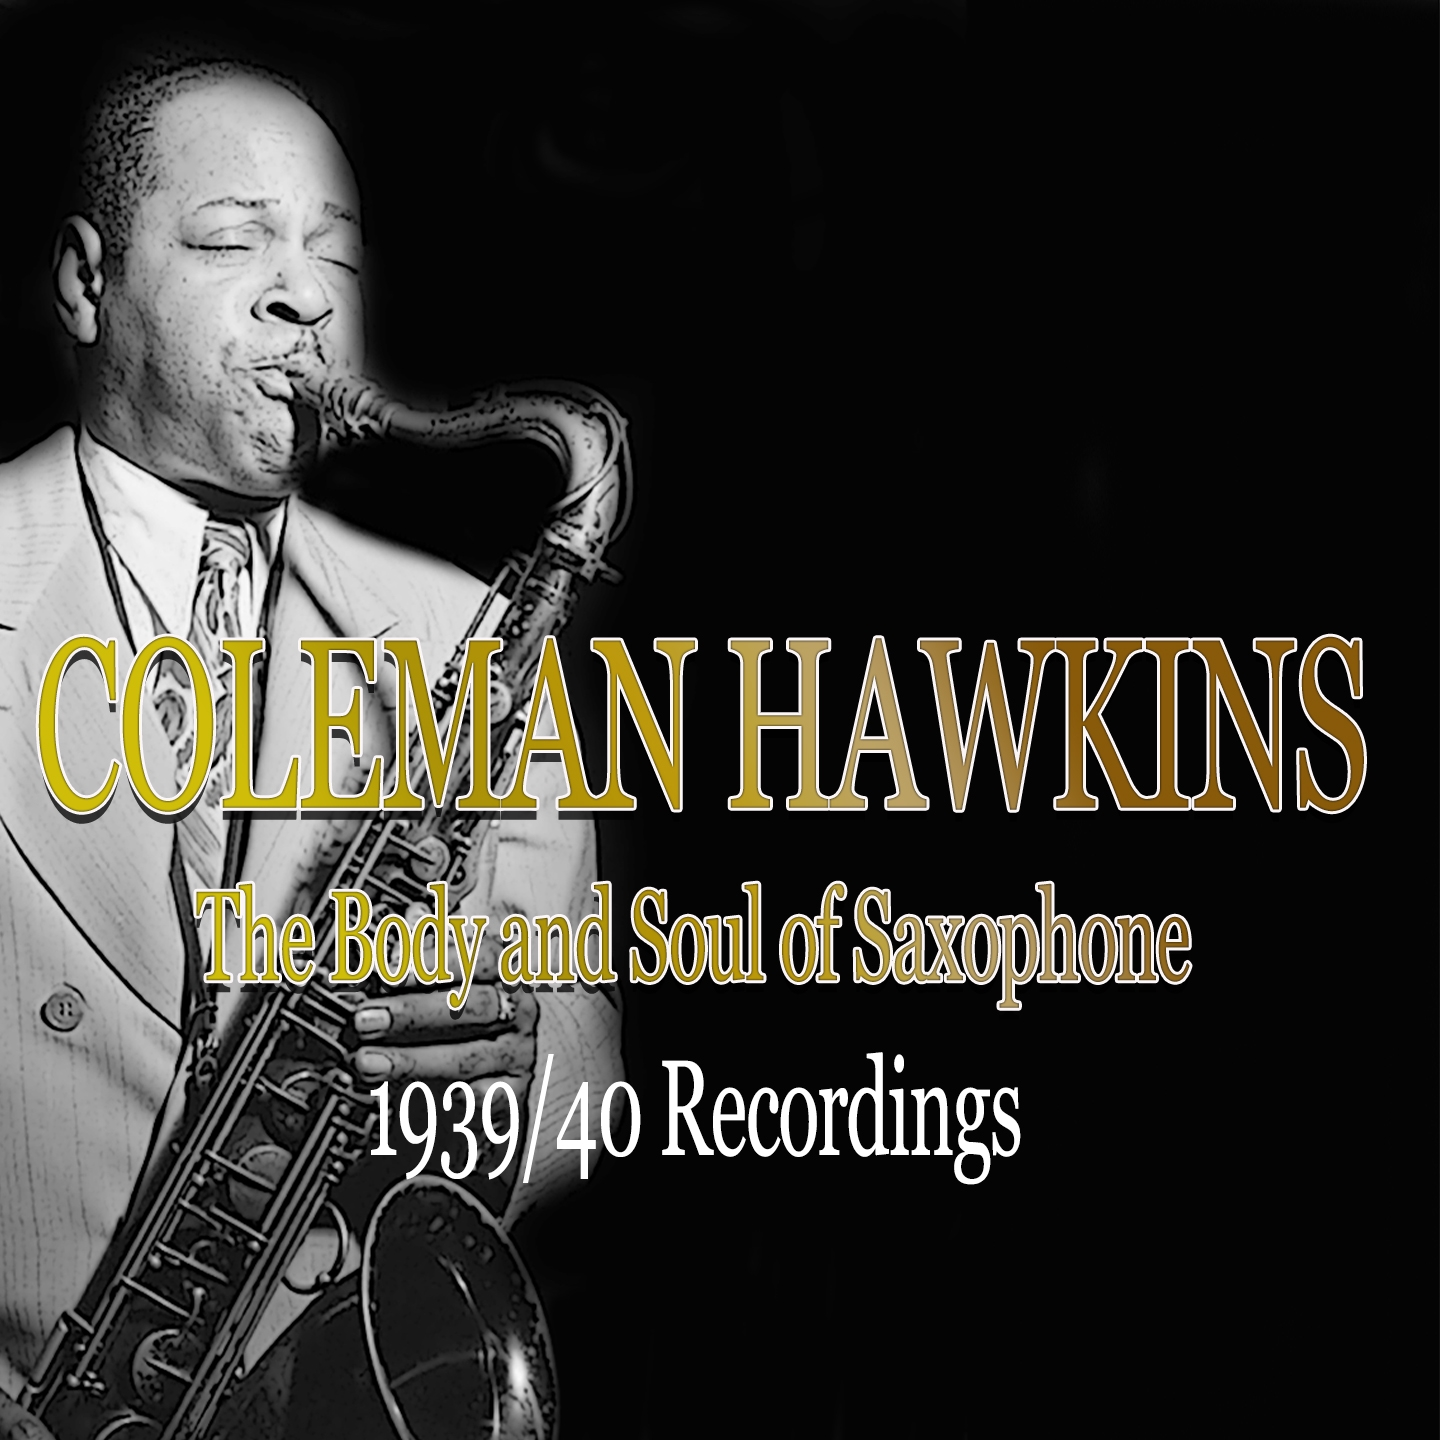 Coleman Hawkins: The Body and Soul of Saxophone (1939/40 Recordings)